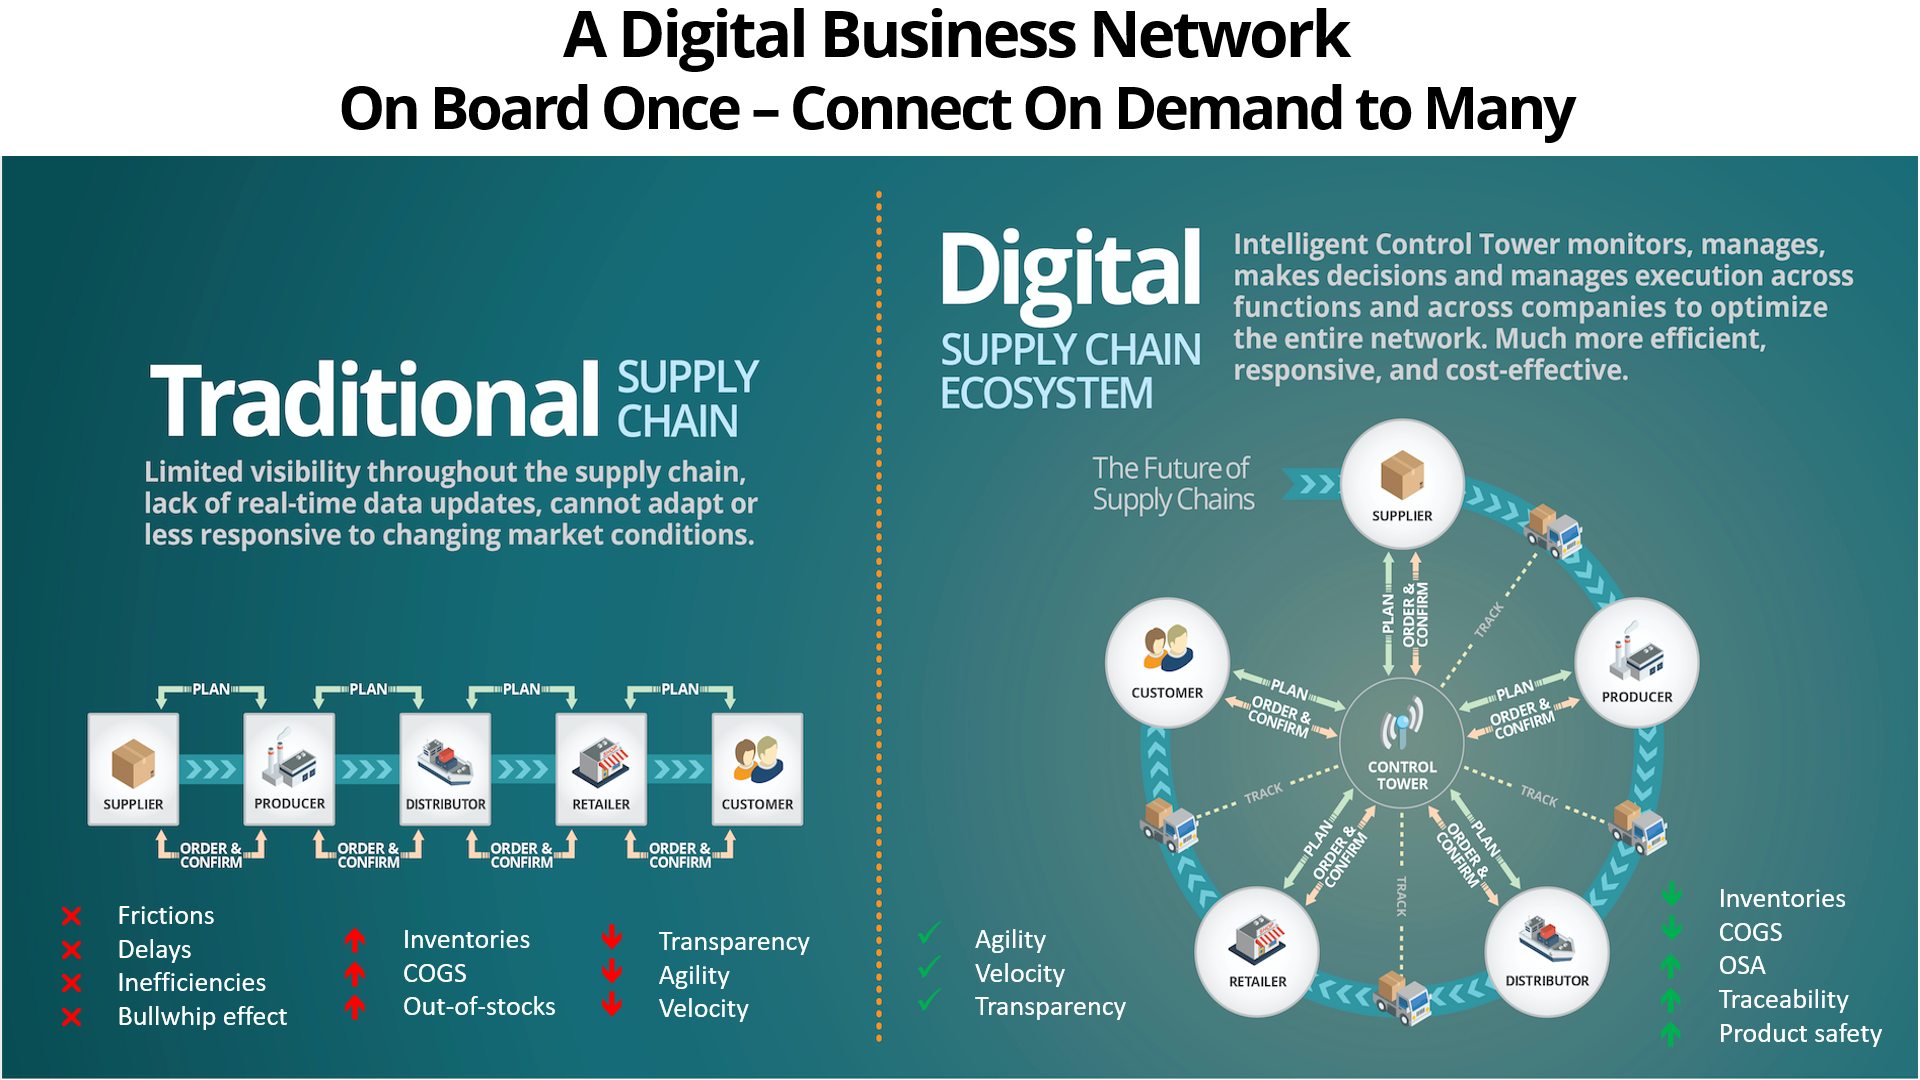 Traditional Supply Chain versus Digital Supply Chains